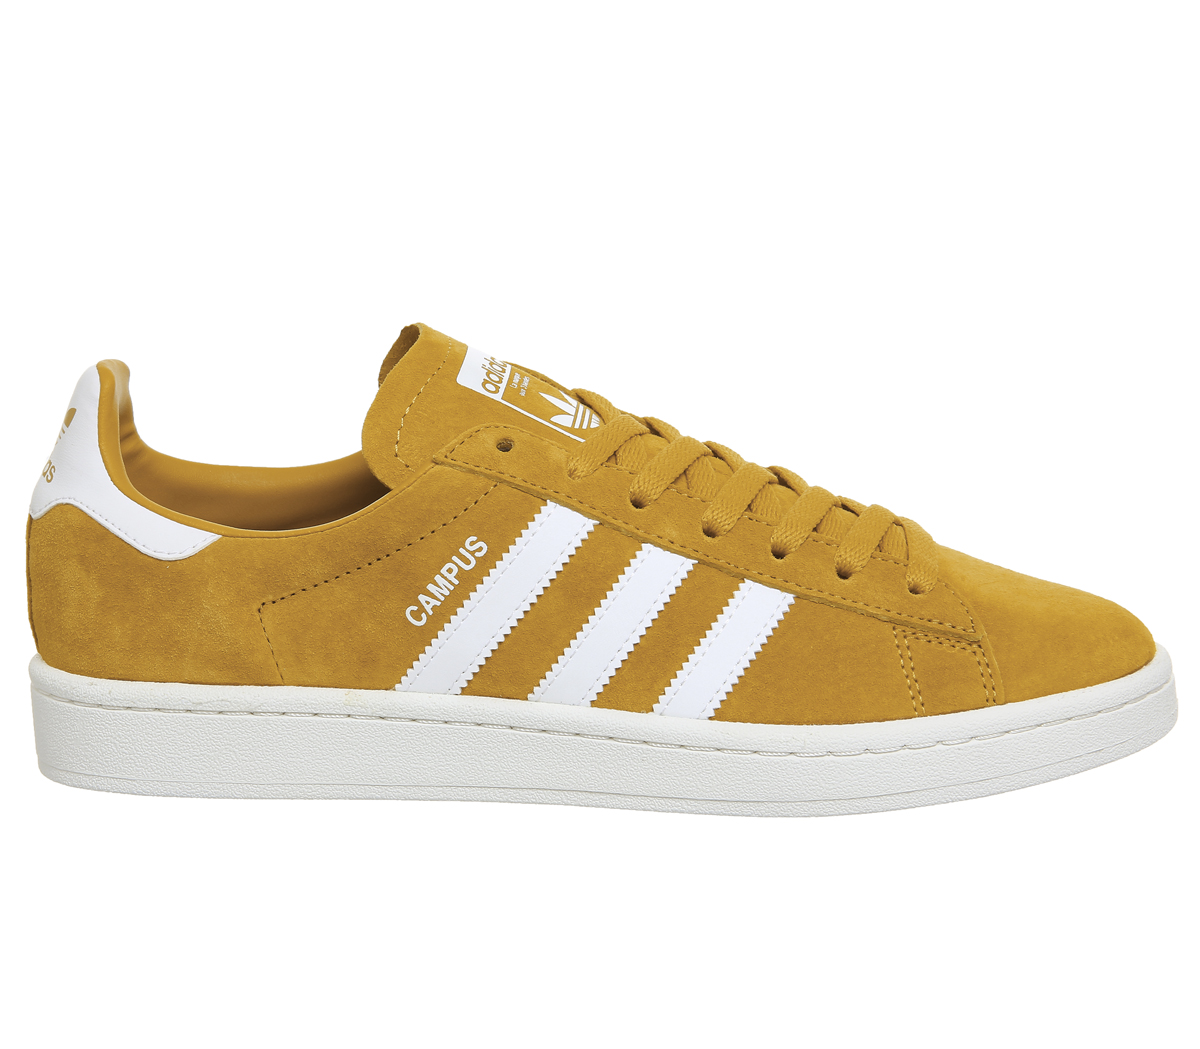 2f70efc1aebe Adidas Campus Trainers TACTILE YELLOW WHITE Trainers Shoes